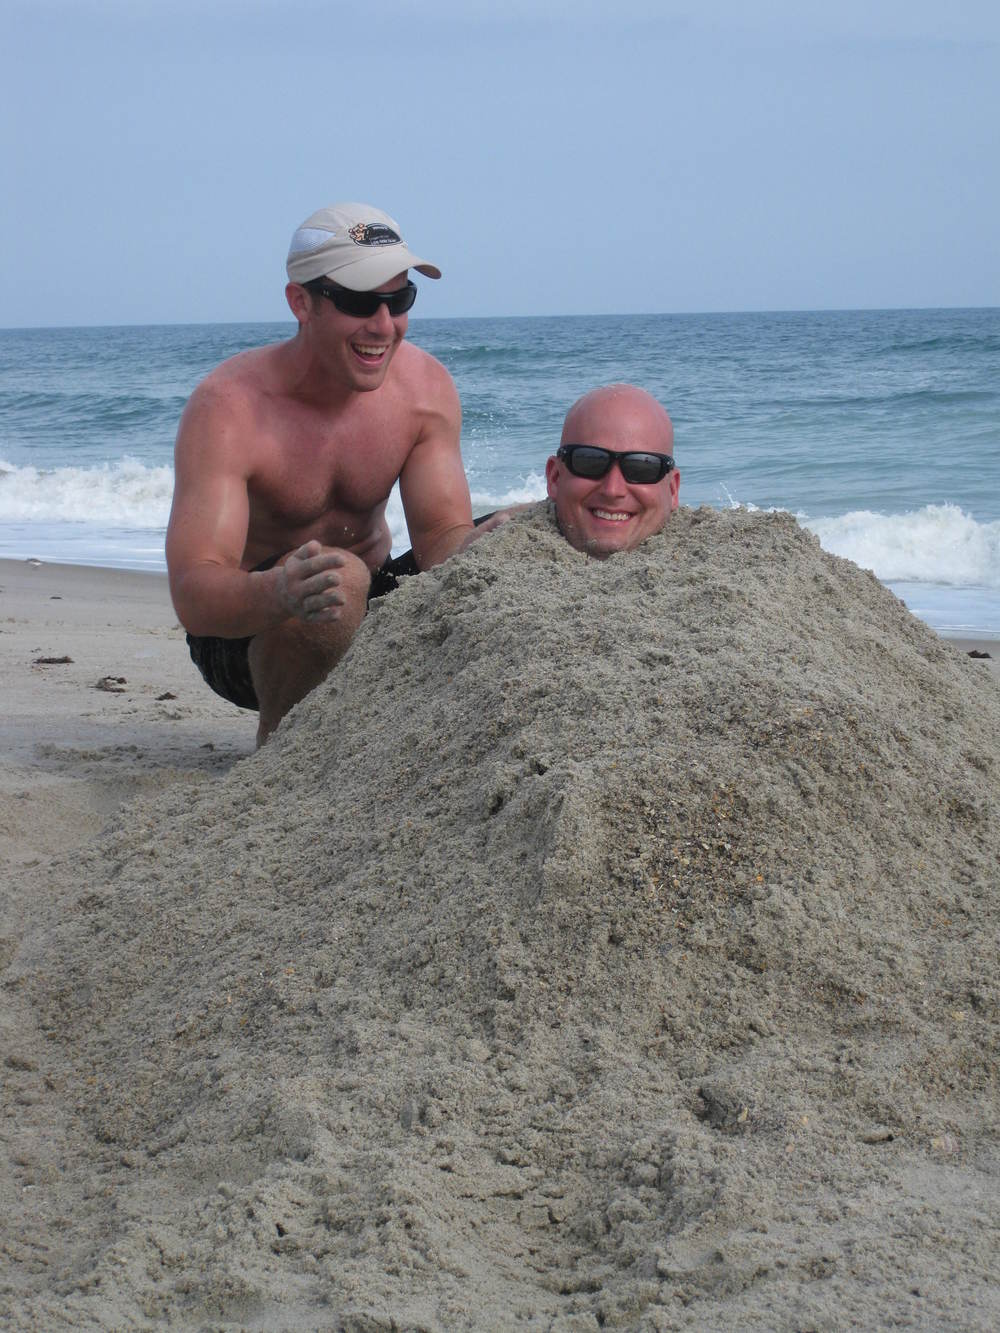 Burying_Andy_in_sand_at_beach.JPG